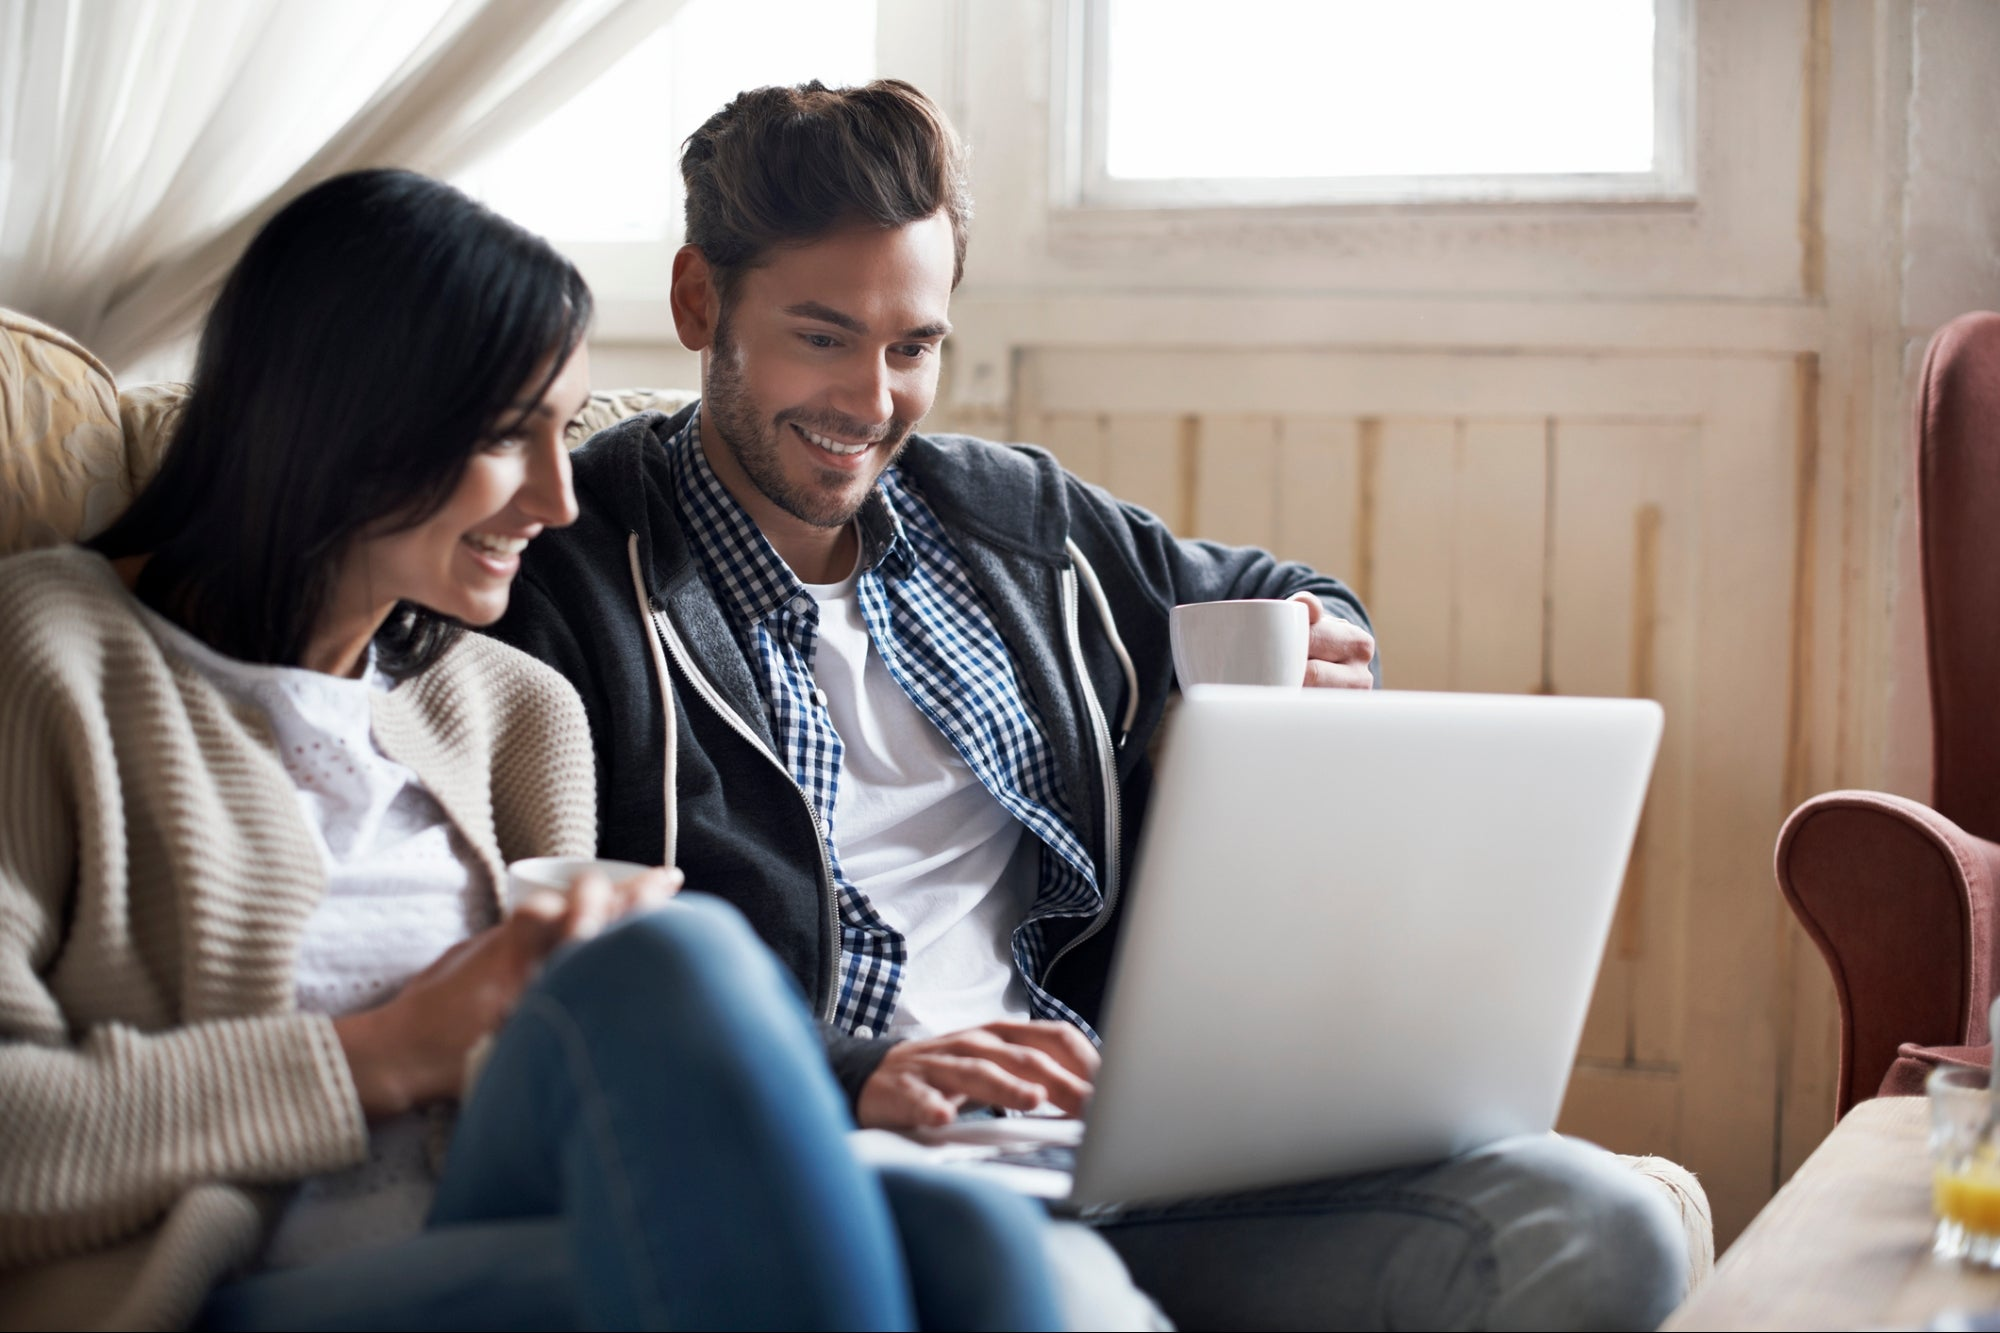 Your Buyer's Journey is Now Online. Is Your Customer Experience Digital-First Too?